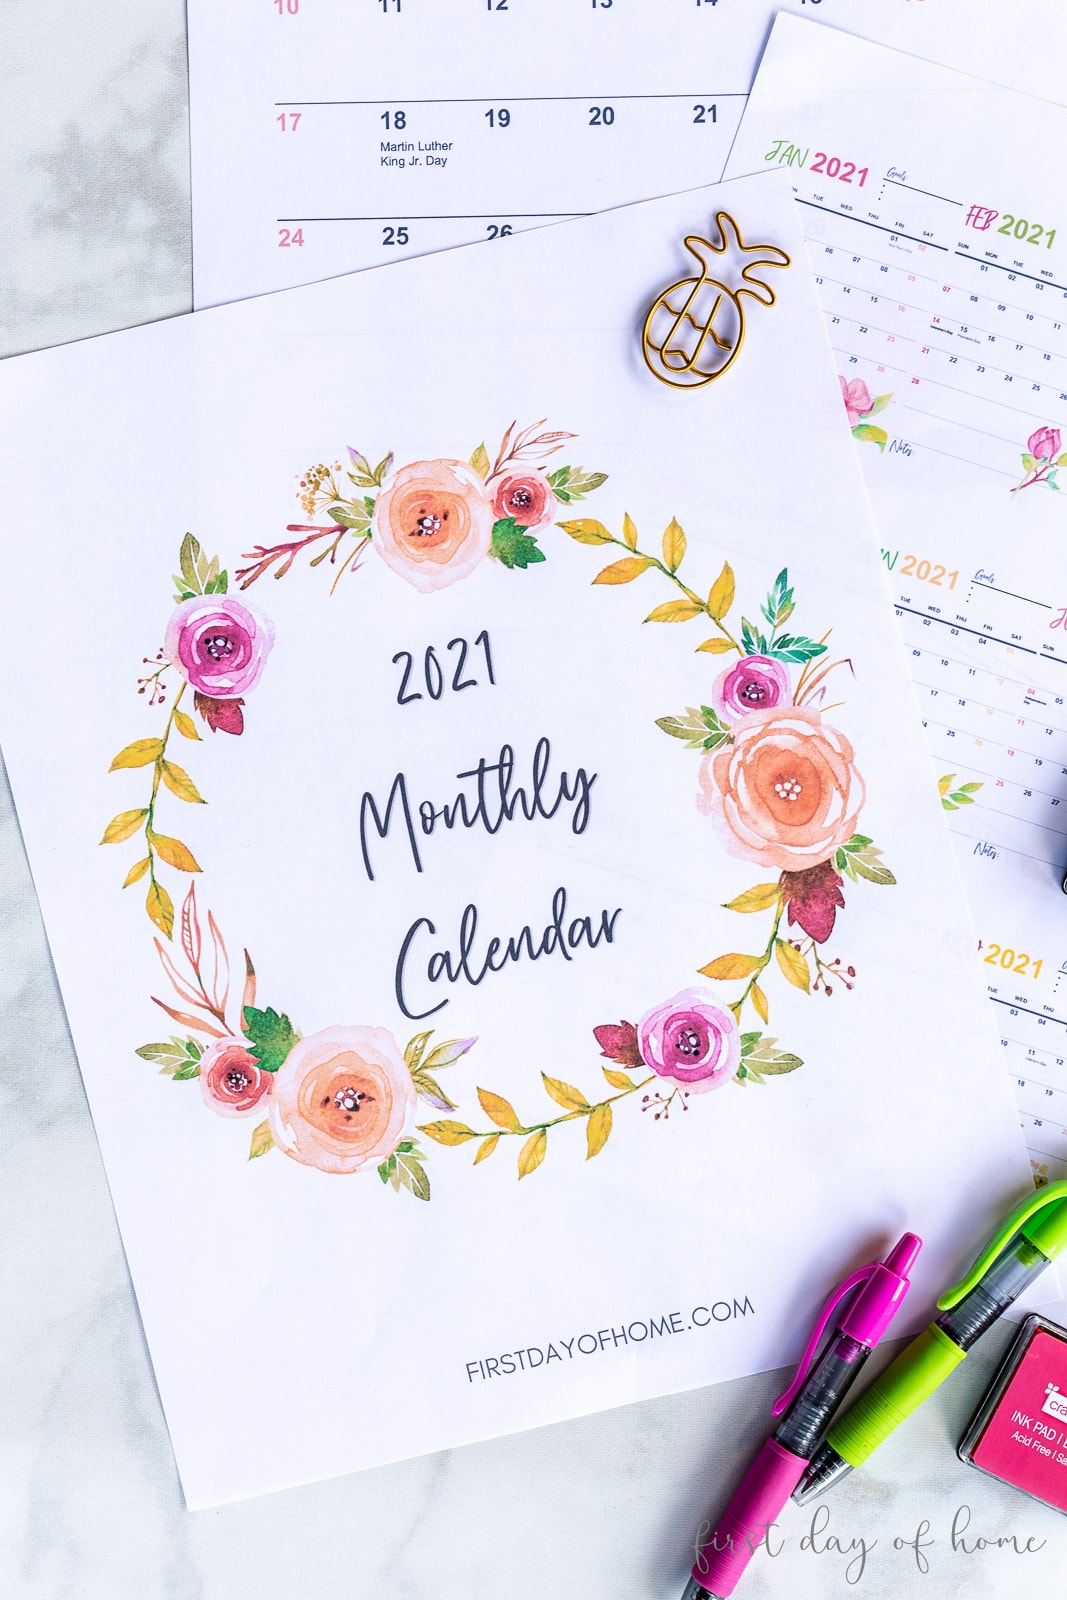 Printable 2021 calendar pages shown with pineapple paper clips, colorful pens and ink pad